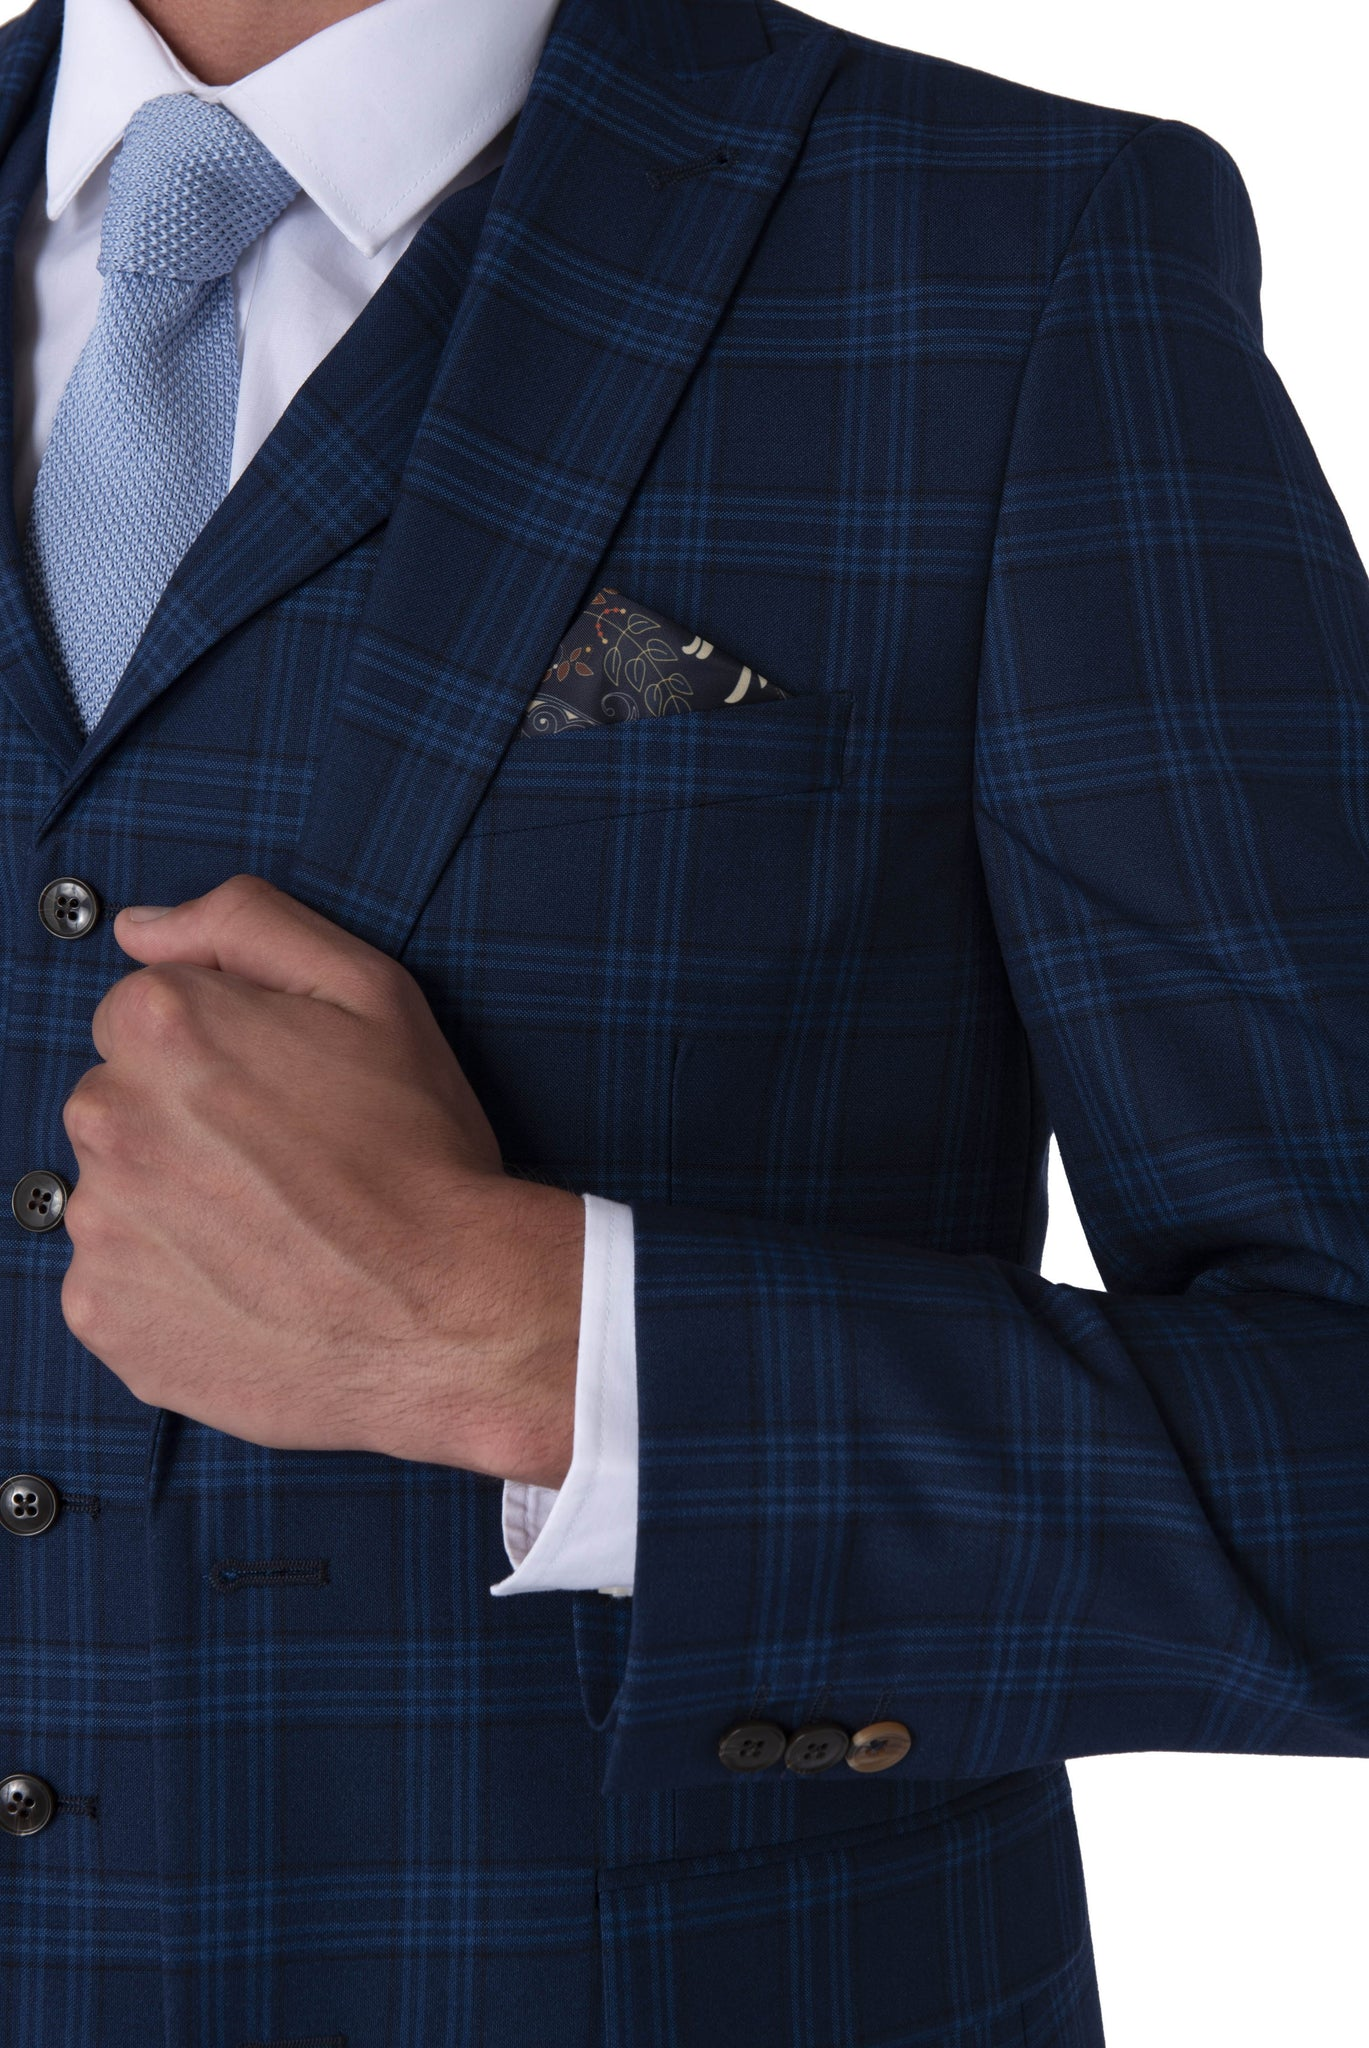 Lapel & cuff of BOBBY Blue & Black Check Three Piece Suit